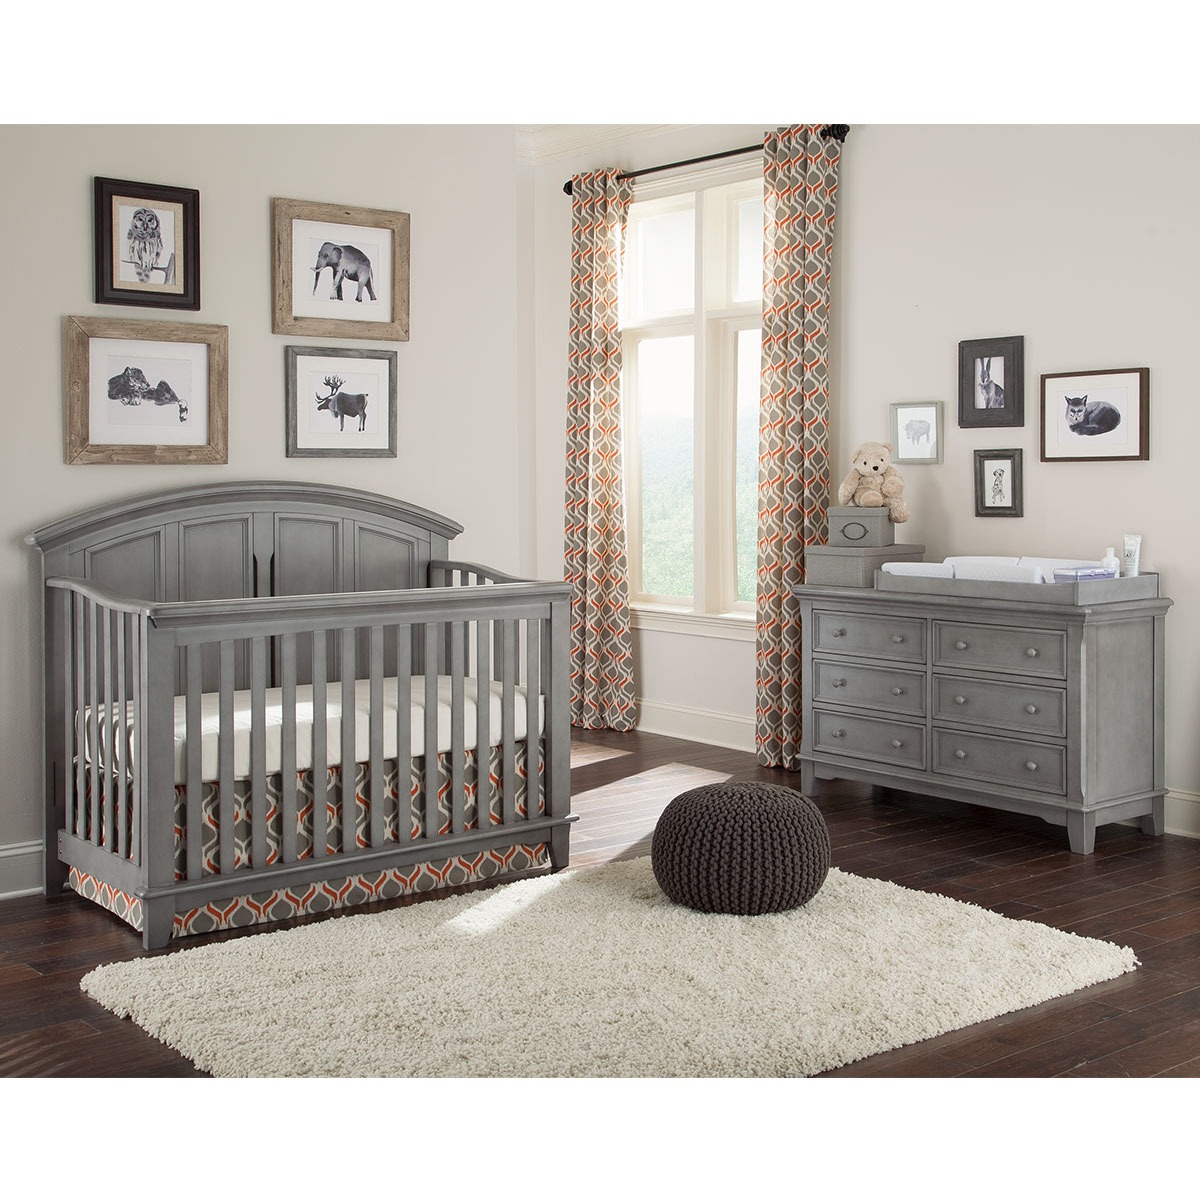 cottage crib waverly your convertible baby for design westwood lovekidszone best cribs tuscan on